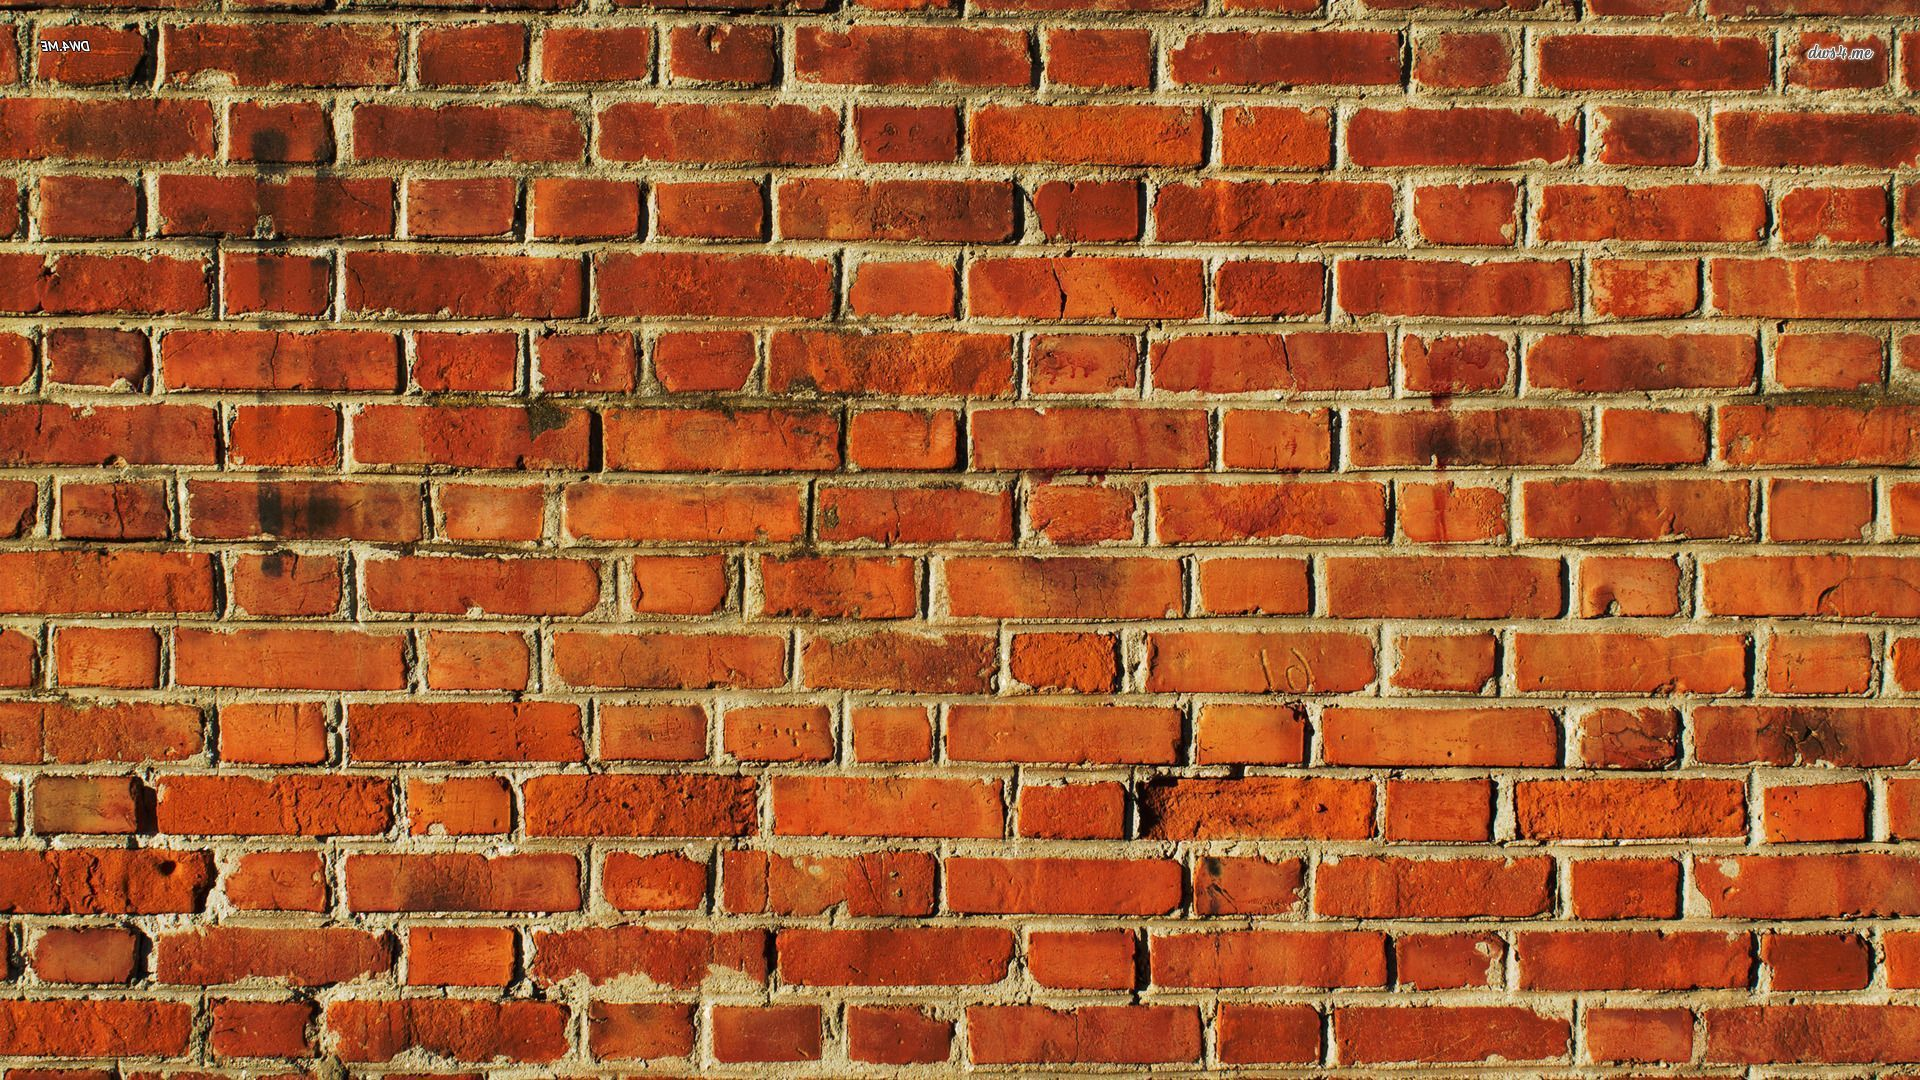 Brick wall wallpaper background factory pinterest for Wallpapering a wall